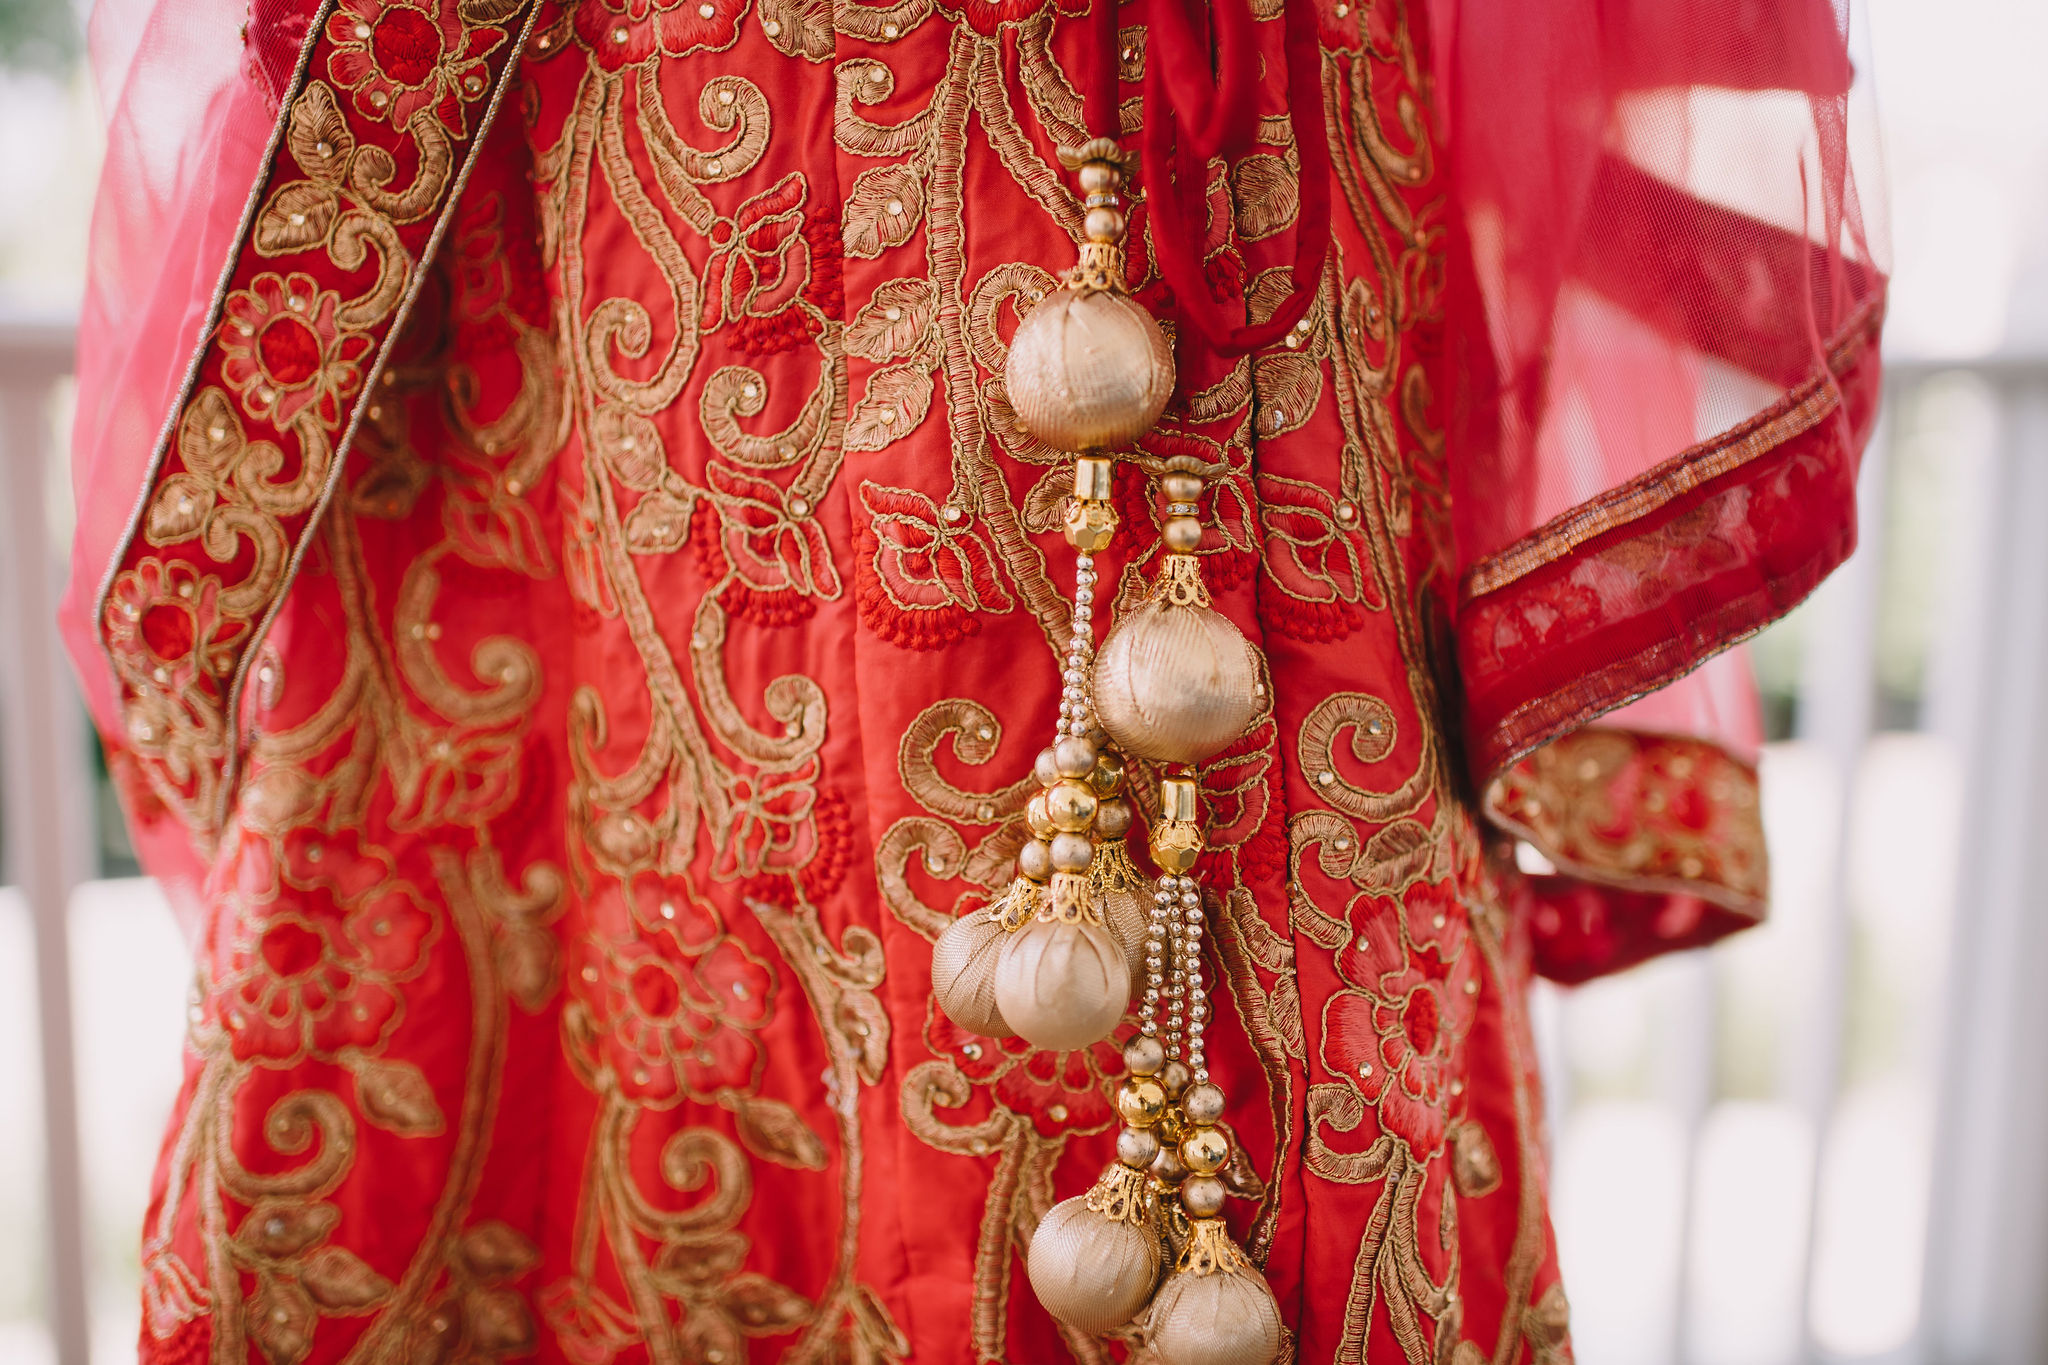 Rachel and Jimmy's wedding weekend included a Mehndi Party. For this event, Rachel wore a traditional Lehenga in red and gold.